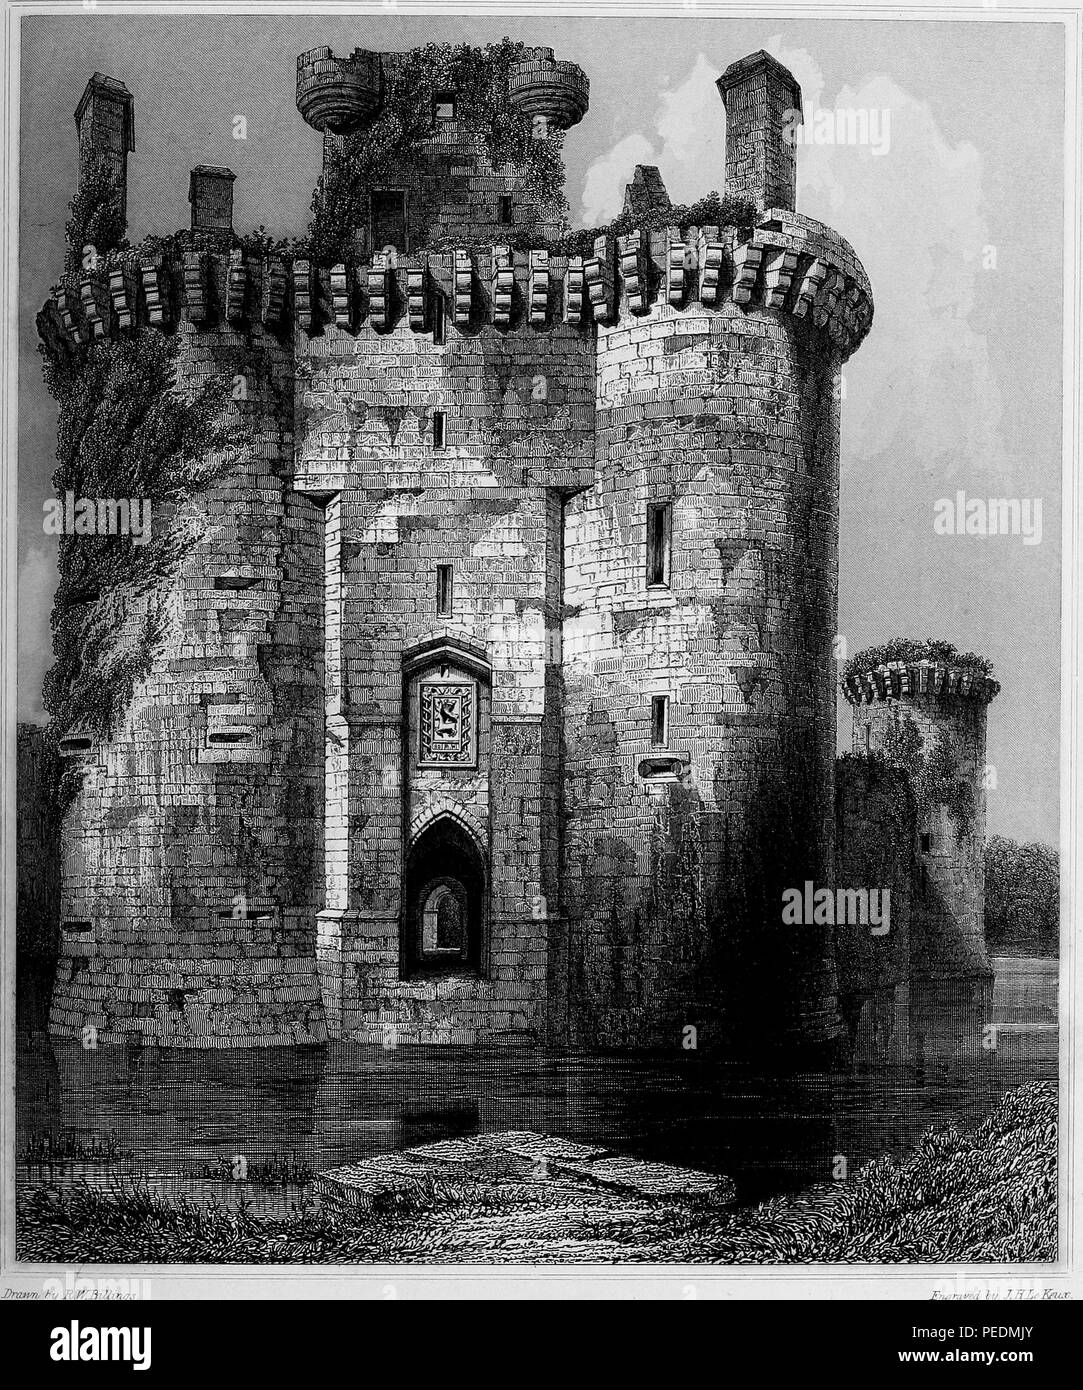 Black and white engraving, depicting the moat, entrance gateway and towers flanking the decaying facade of the 13th century 'Caerlaverock Castle, ' a moated, triangular castle located on the southern coast of Scotland, drawn by RW Billings and engraved by JH Le Keux, 1845. Courtesy Internet Archive. () - Stock Image